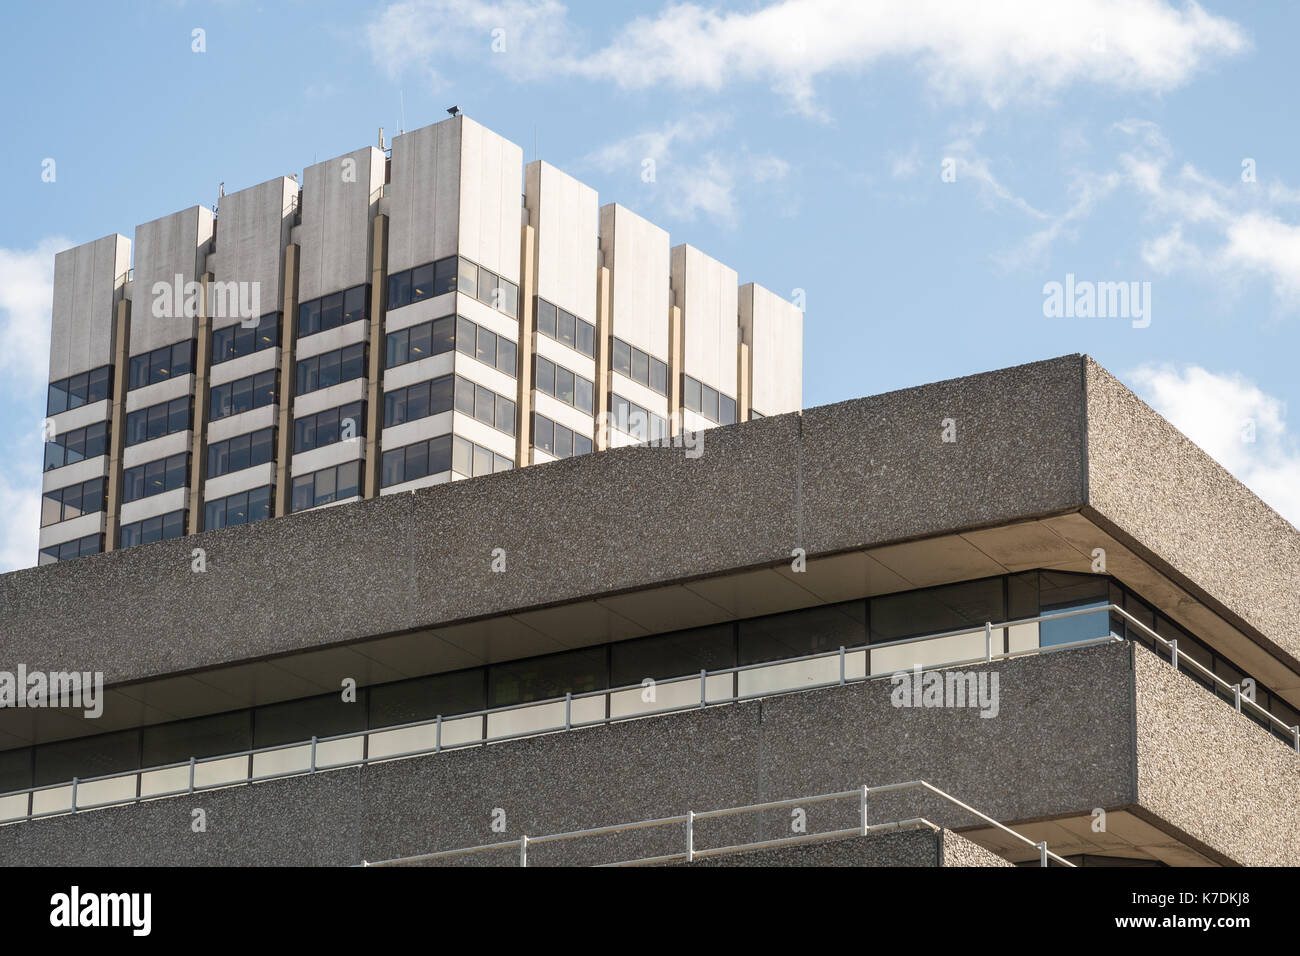 Itv building london stock photos itv building london - National westminster bank head office address ...